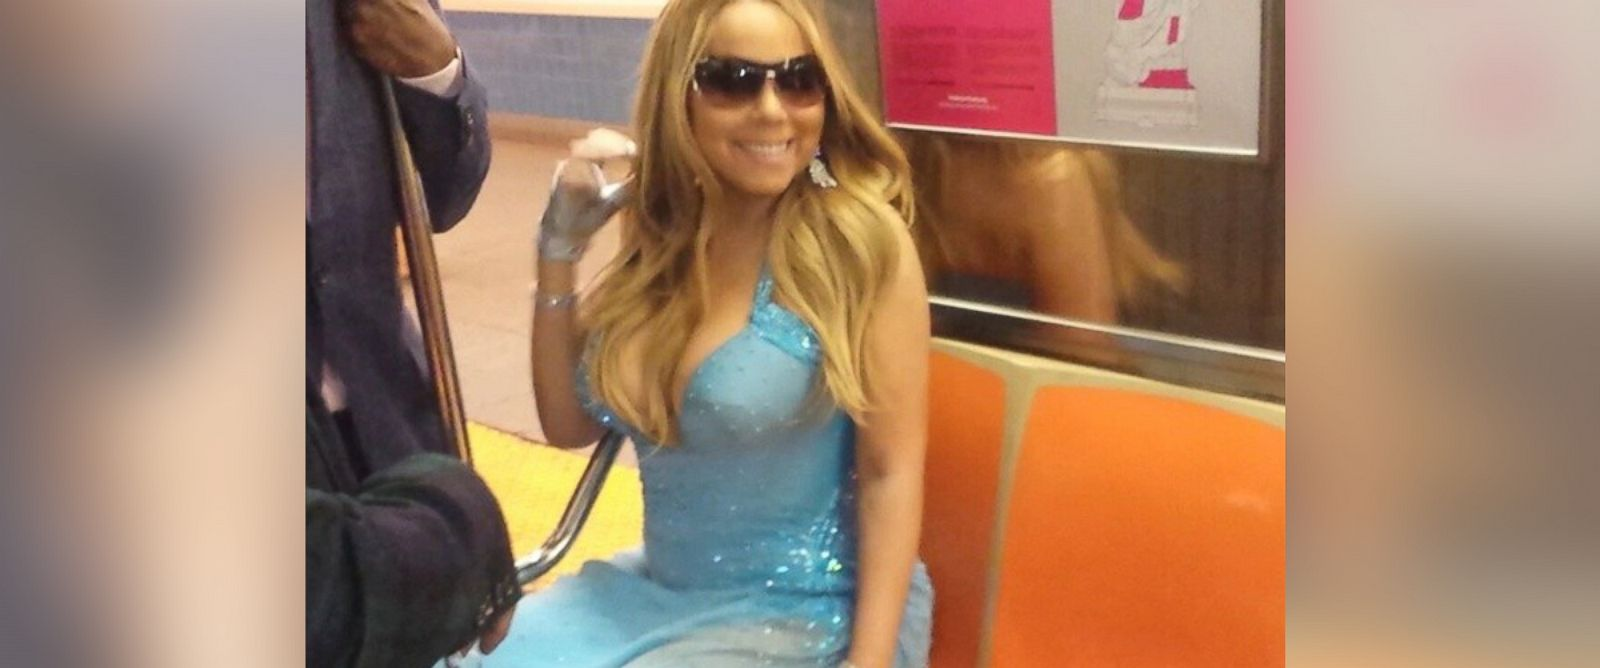 "PHOTO: Mariah Carey posted this photo to her Instagram on May 30, 2014 with the caption, ""Glimpses of our joyride on the 1 train #subwayincouture."""